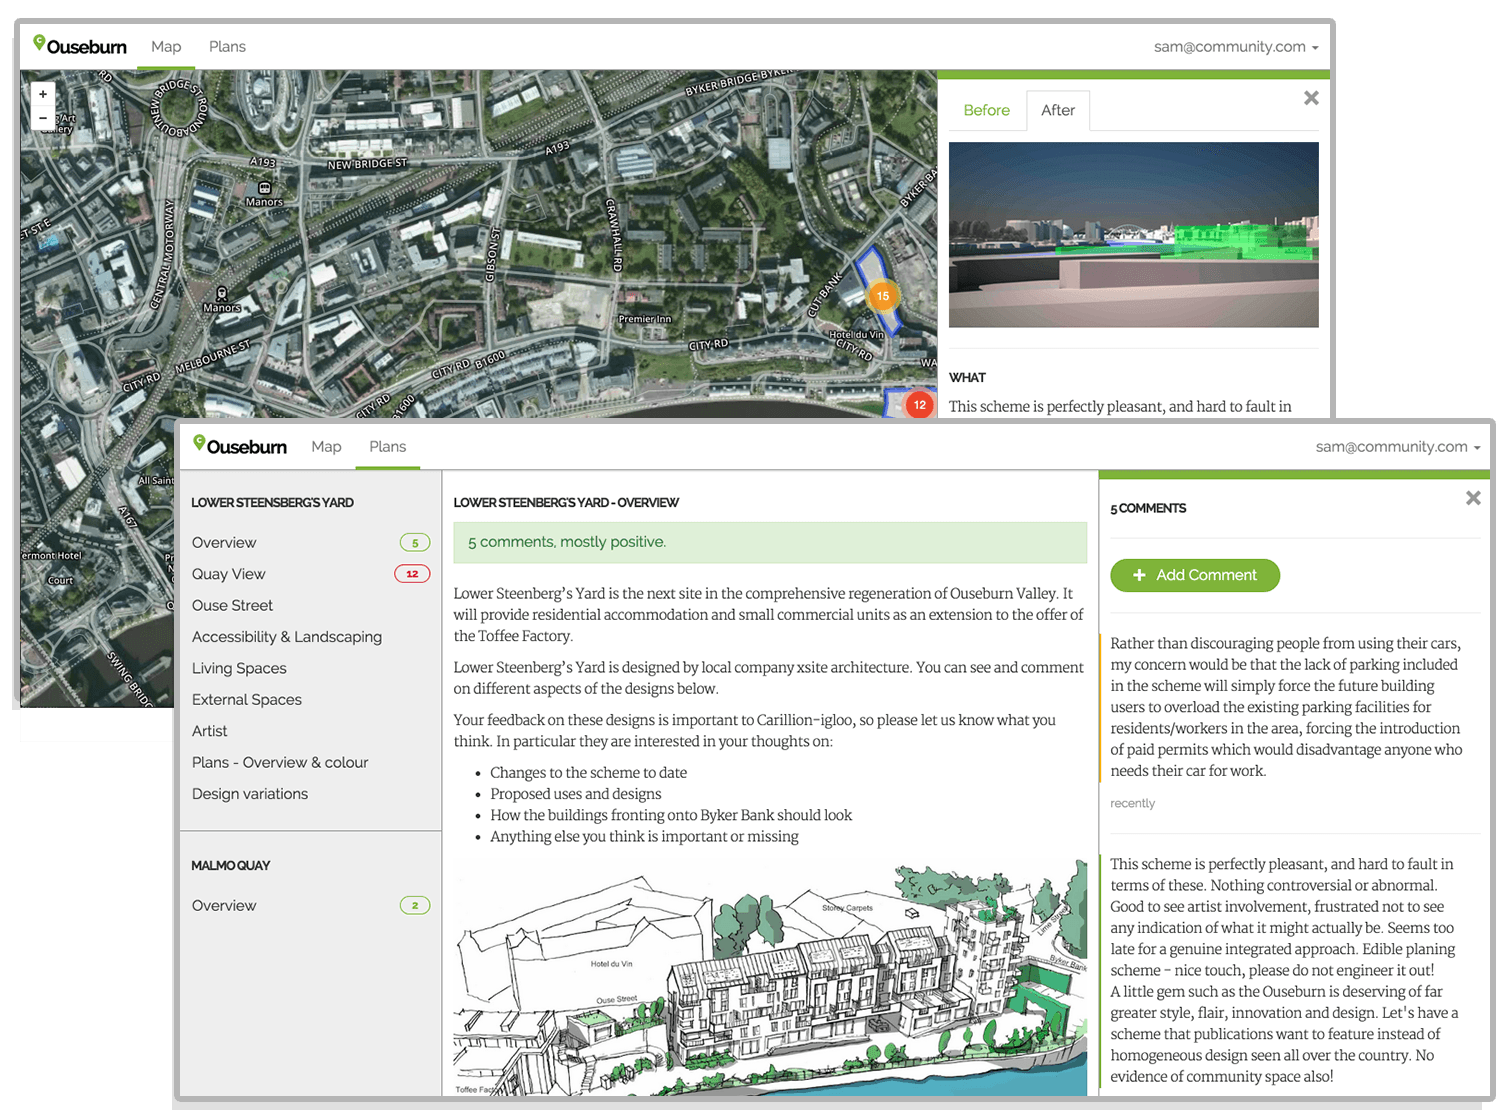 casestudy-userinterface-ouseburn.png